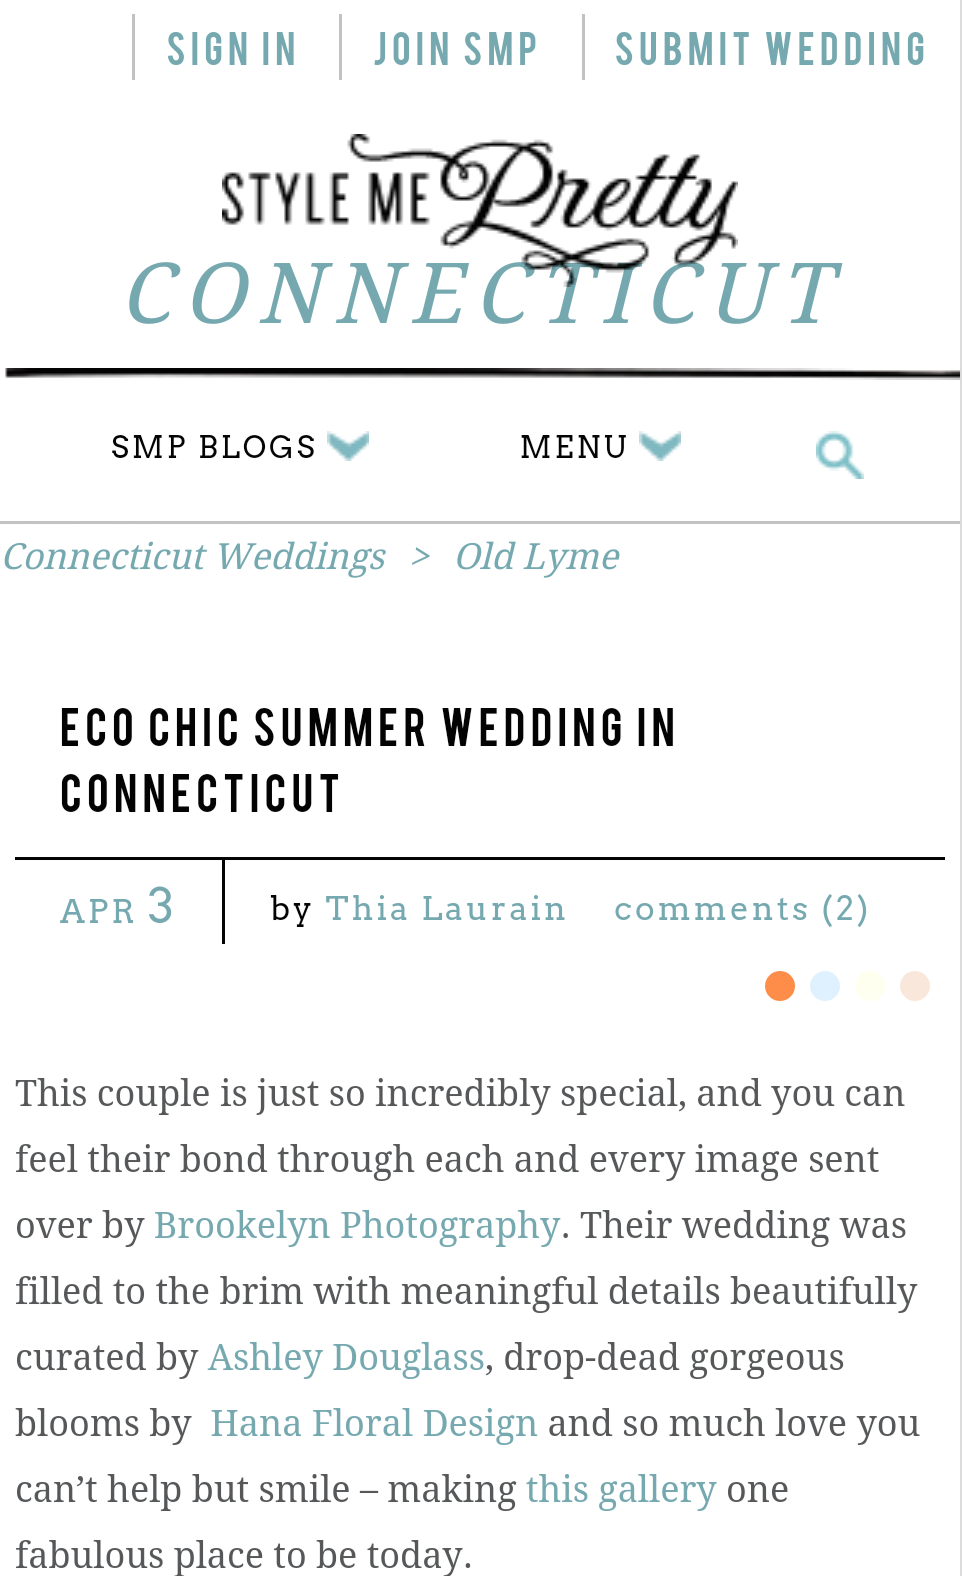 Ashley Douglass Events on Style Me Pretty, CT and NYC Wedding Planner